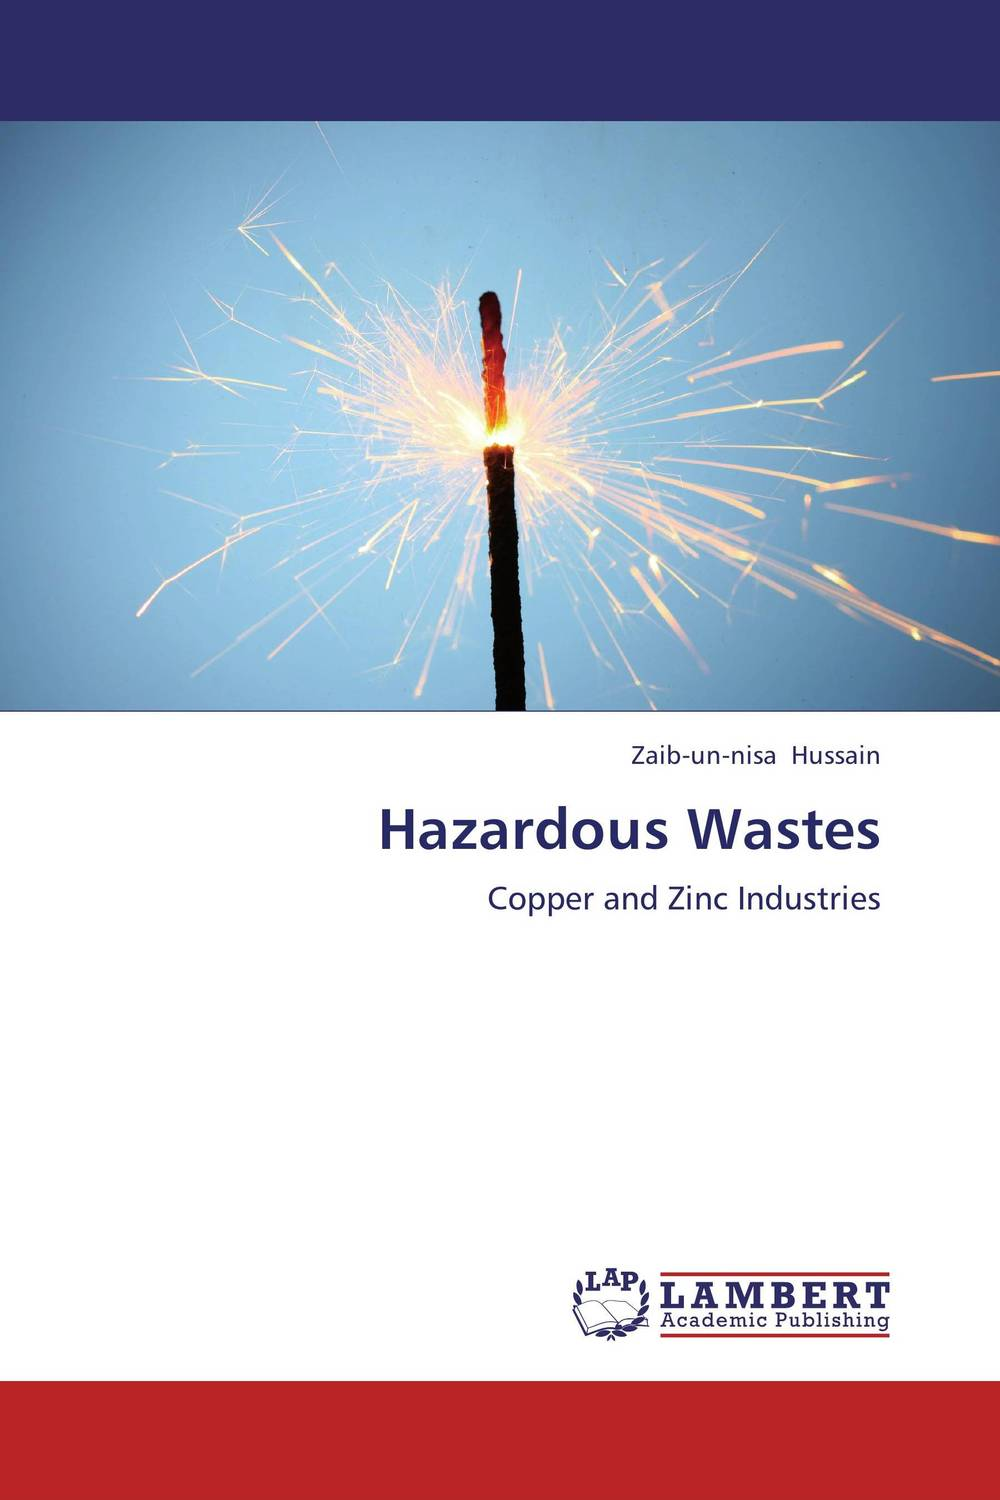 Hazardous Wastes prc environmental mgmt s hazardous waste reducation in the metal finishing industry